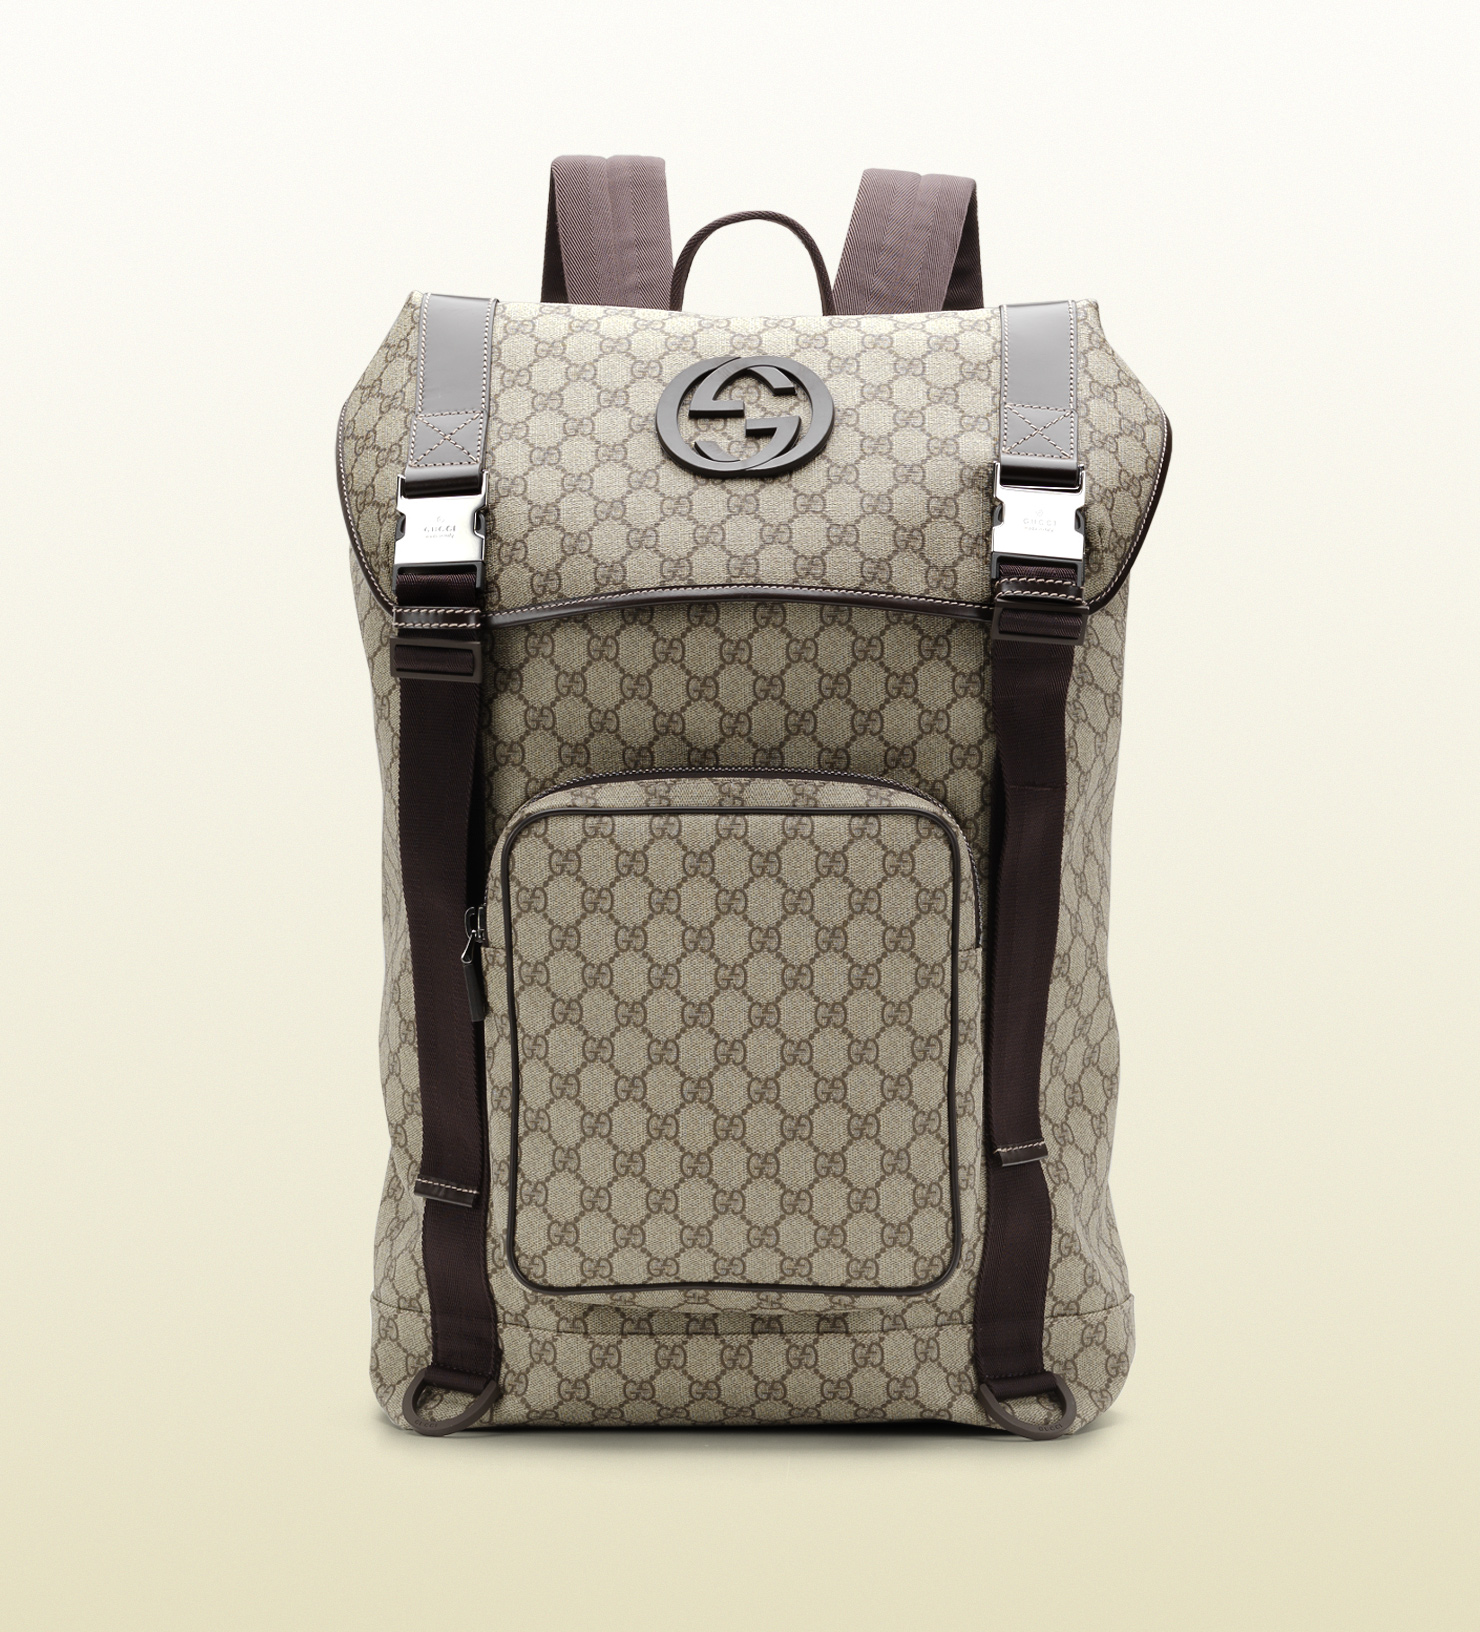 1b4bb1b9659173 Gucci Gg Supreme Canvas Interlocking G Backpack in Gray for Men - Lyst